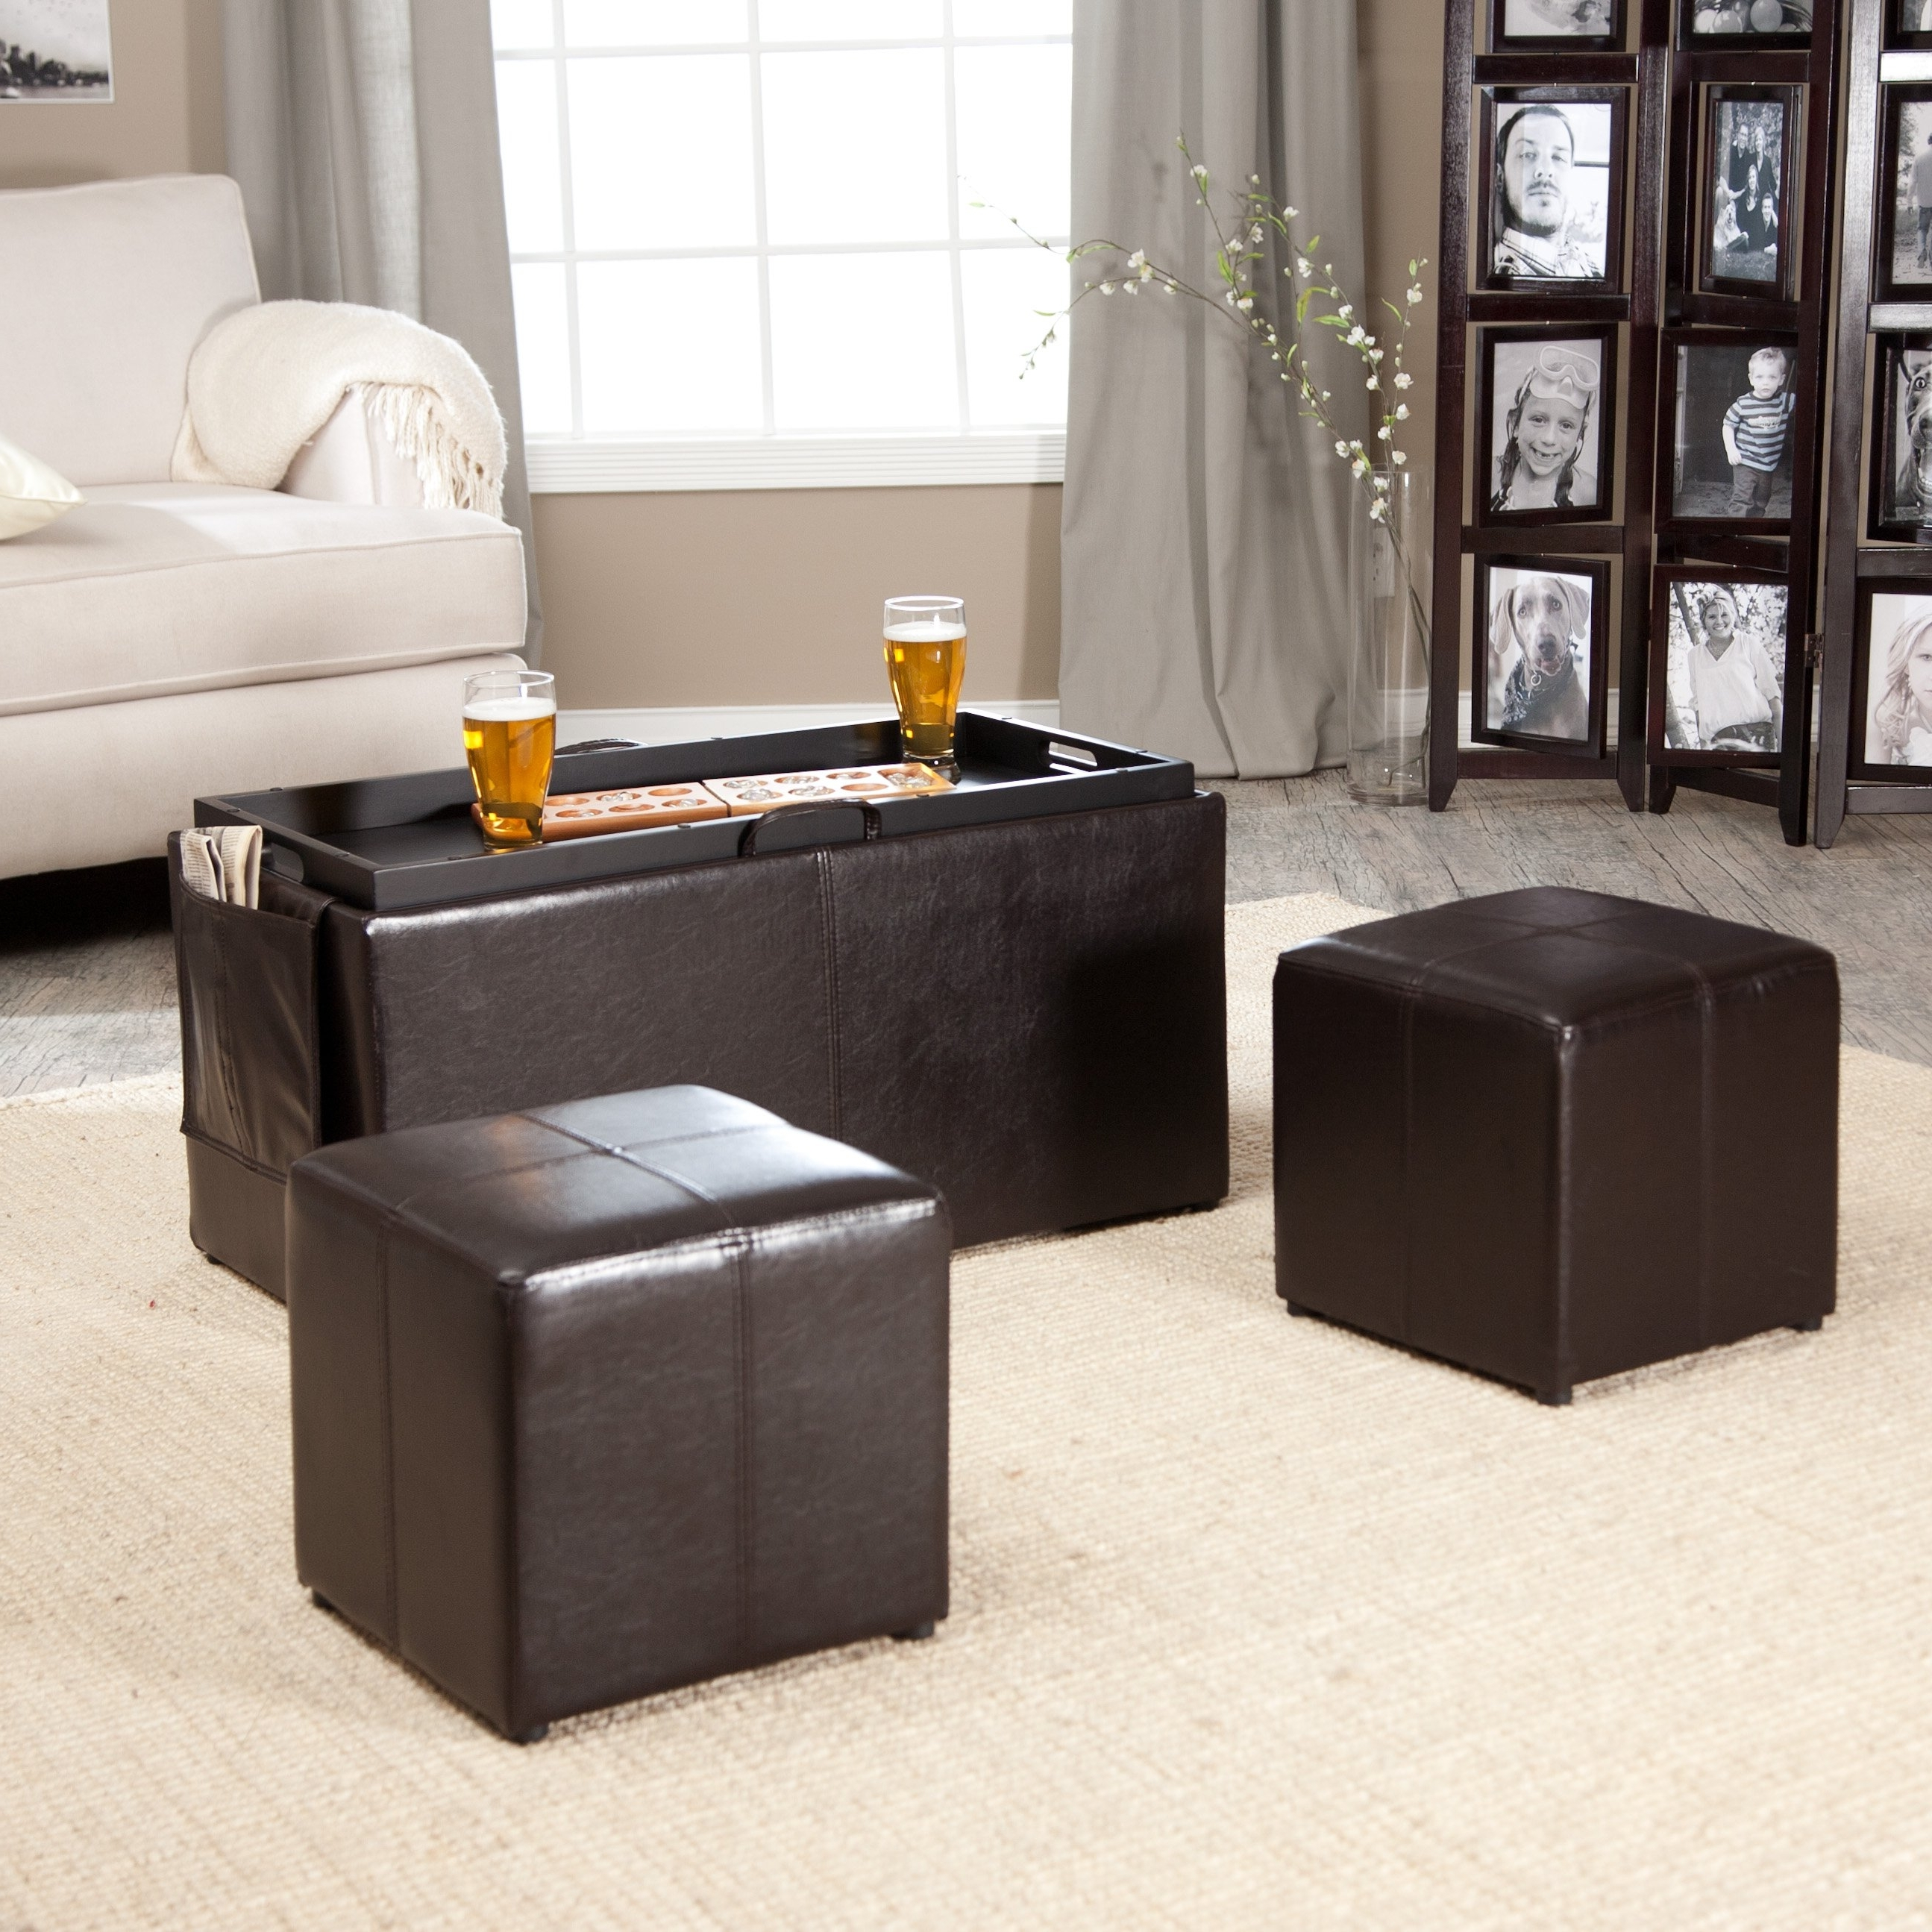 Famous Ottomans With Tray Pertaining To Hartley Coffee Table Storage Ottoman With Tray – Side Ottomans (View 9 of 15)